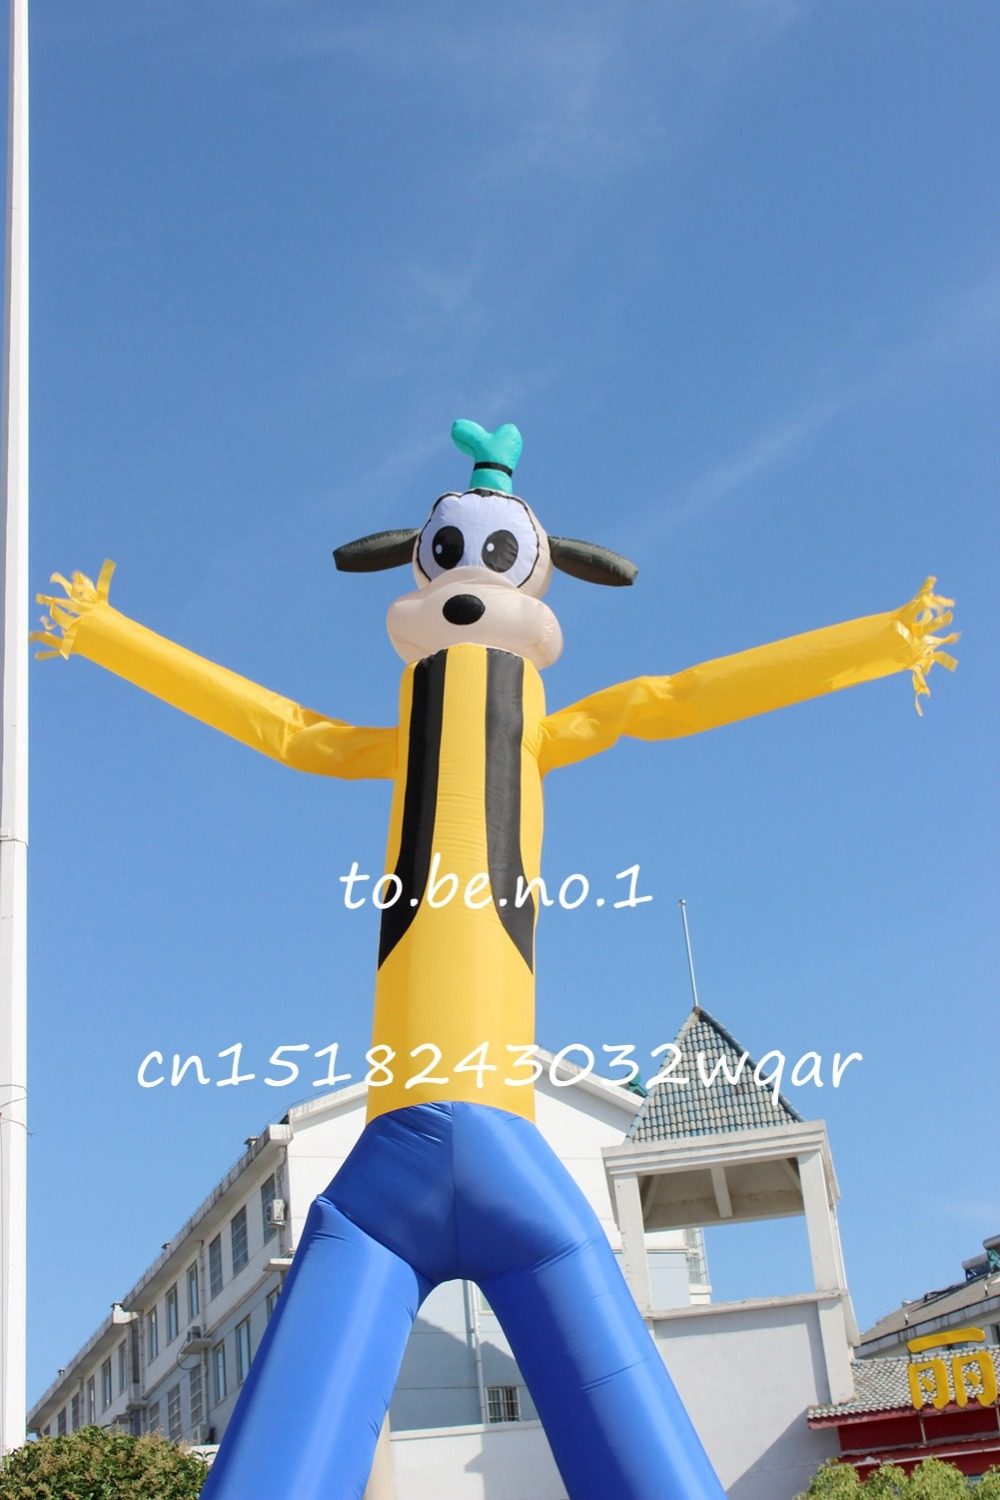 Sky Dancer Air Dancer Inflatable Toys 6M 20FT Inflatable Tube NO Blowers NO blower Inflatable Toys Shop ads sign S1003 цена и фото